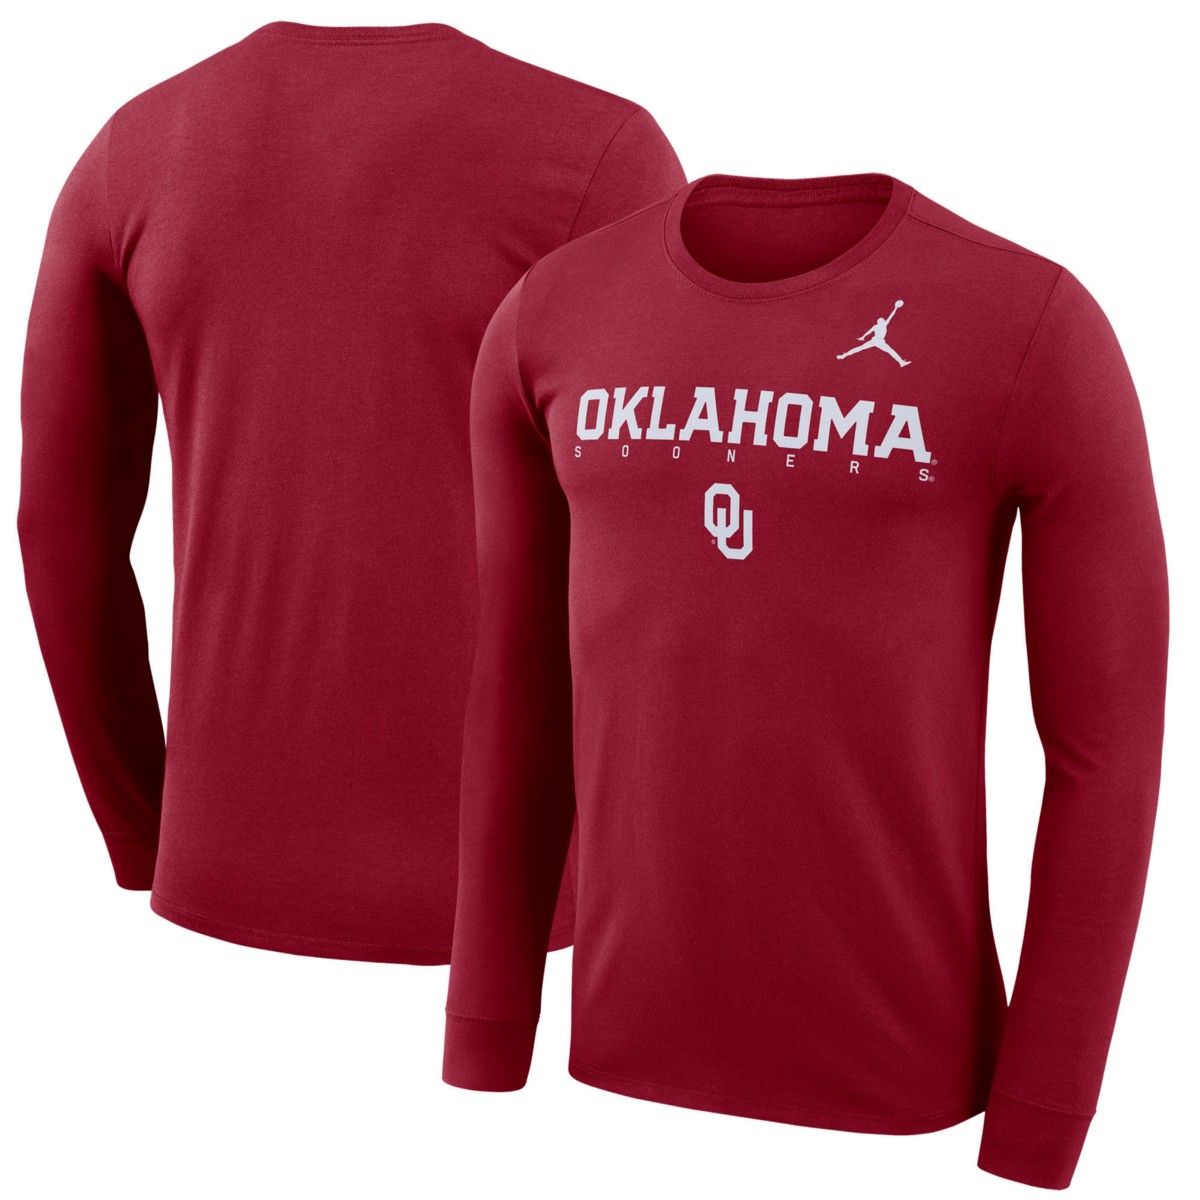 681fc84aa7b So if you dislike the new wordmark, but want some jumpman gear, this is  your best bet. Jordan Men's Oklahoma Sooners ...